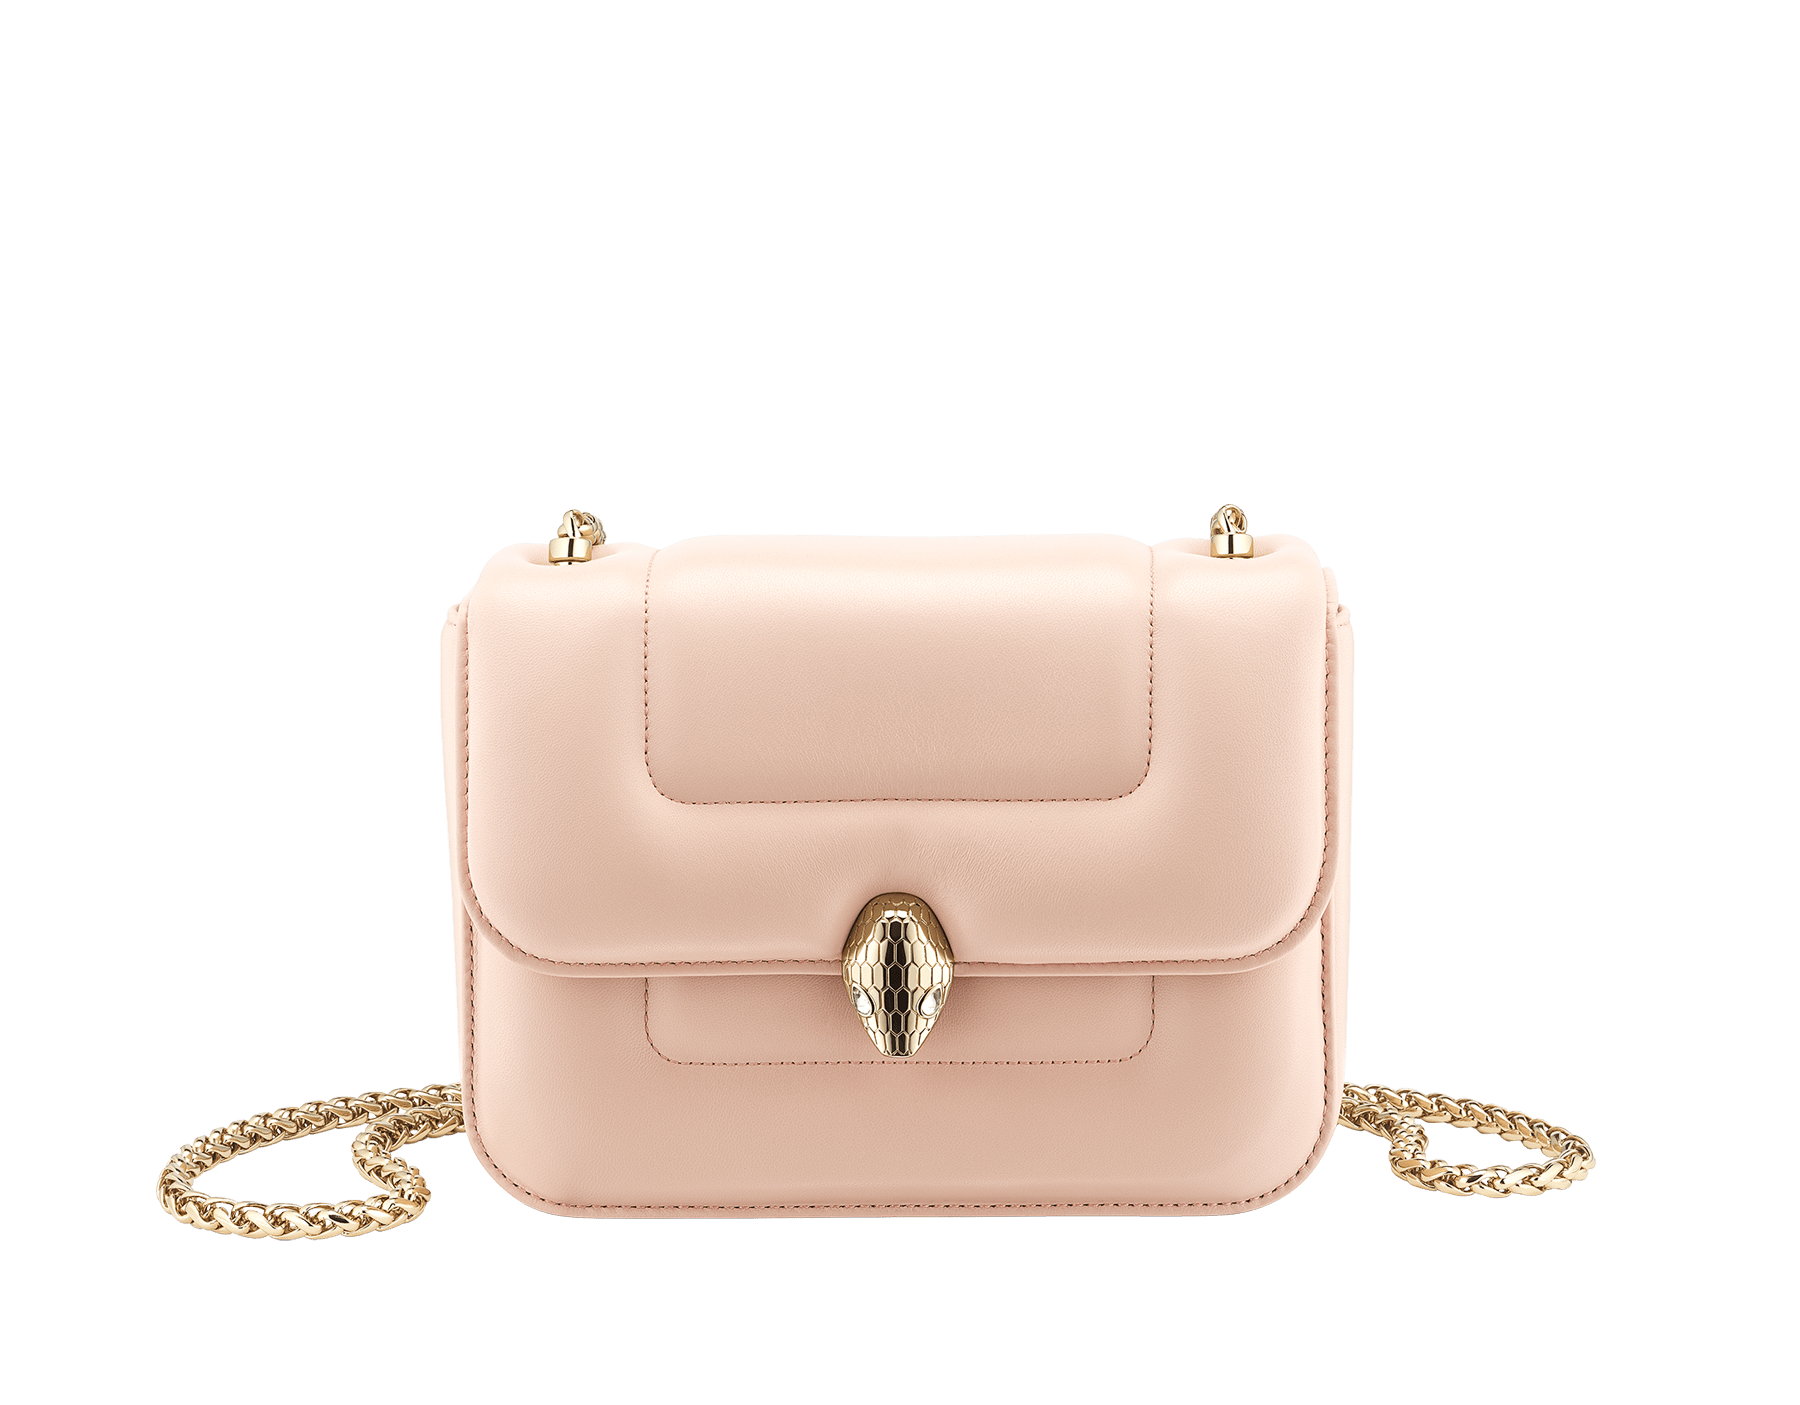 """""""Mary Katrantzou x Bvlgari"""" top handle bag in soft matelassé Aegean Topaz blue nappa leather, with Aegean Topaz blue nappa leather inner lining. New Serpenti head closure in gold-plated brass, finished with seductive crystal eyes. Special Edition. MK-1142 image 4"""